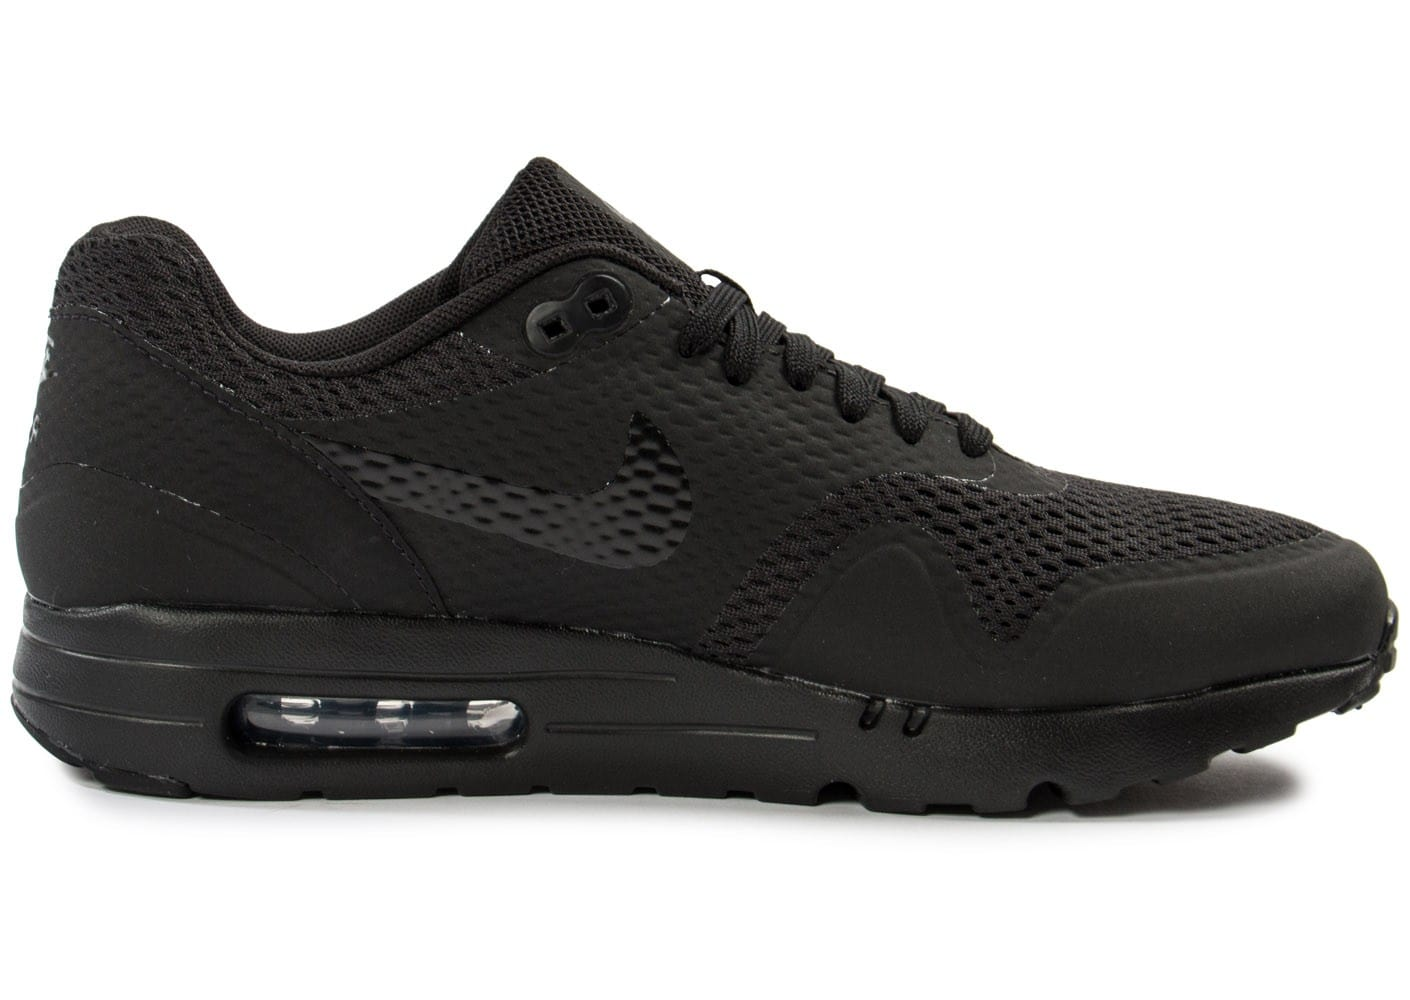 sneakers for cheap 8ced5 e6617 ... hot chaussures nike air max 1 ultra essential noire vue dessous b3598  72a2c